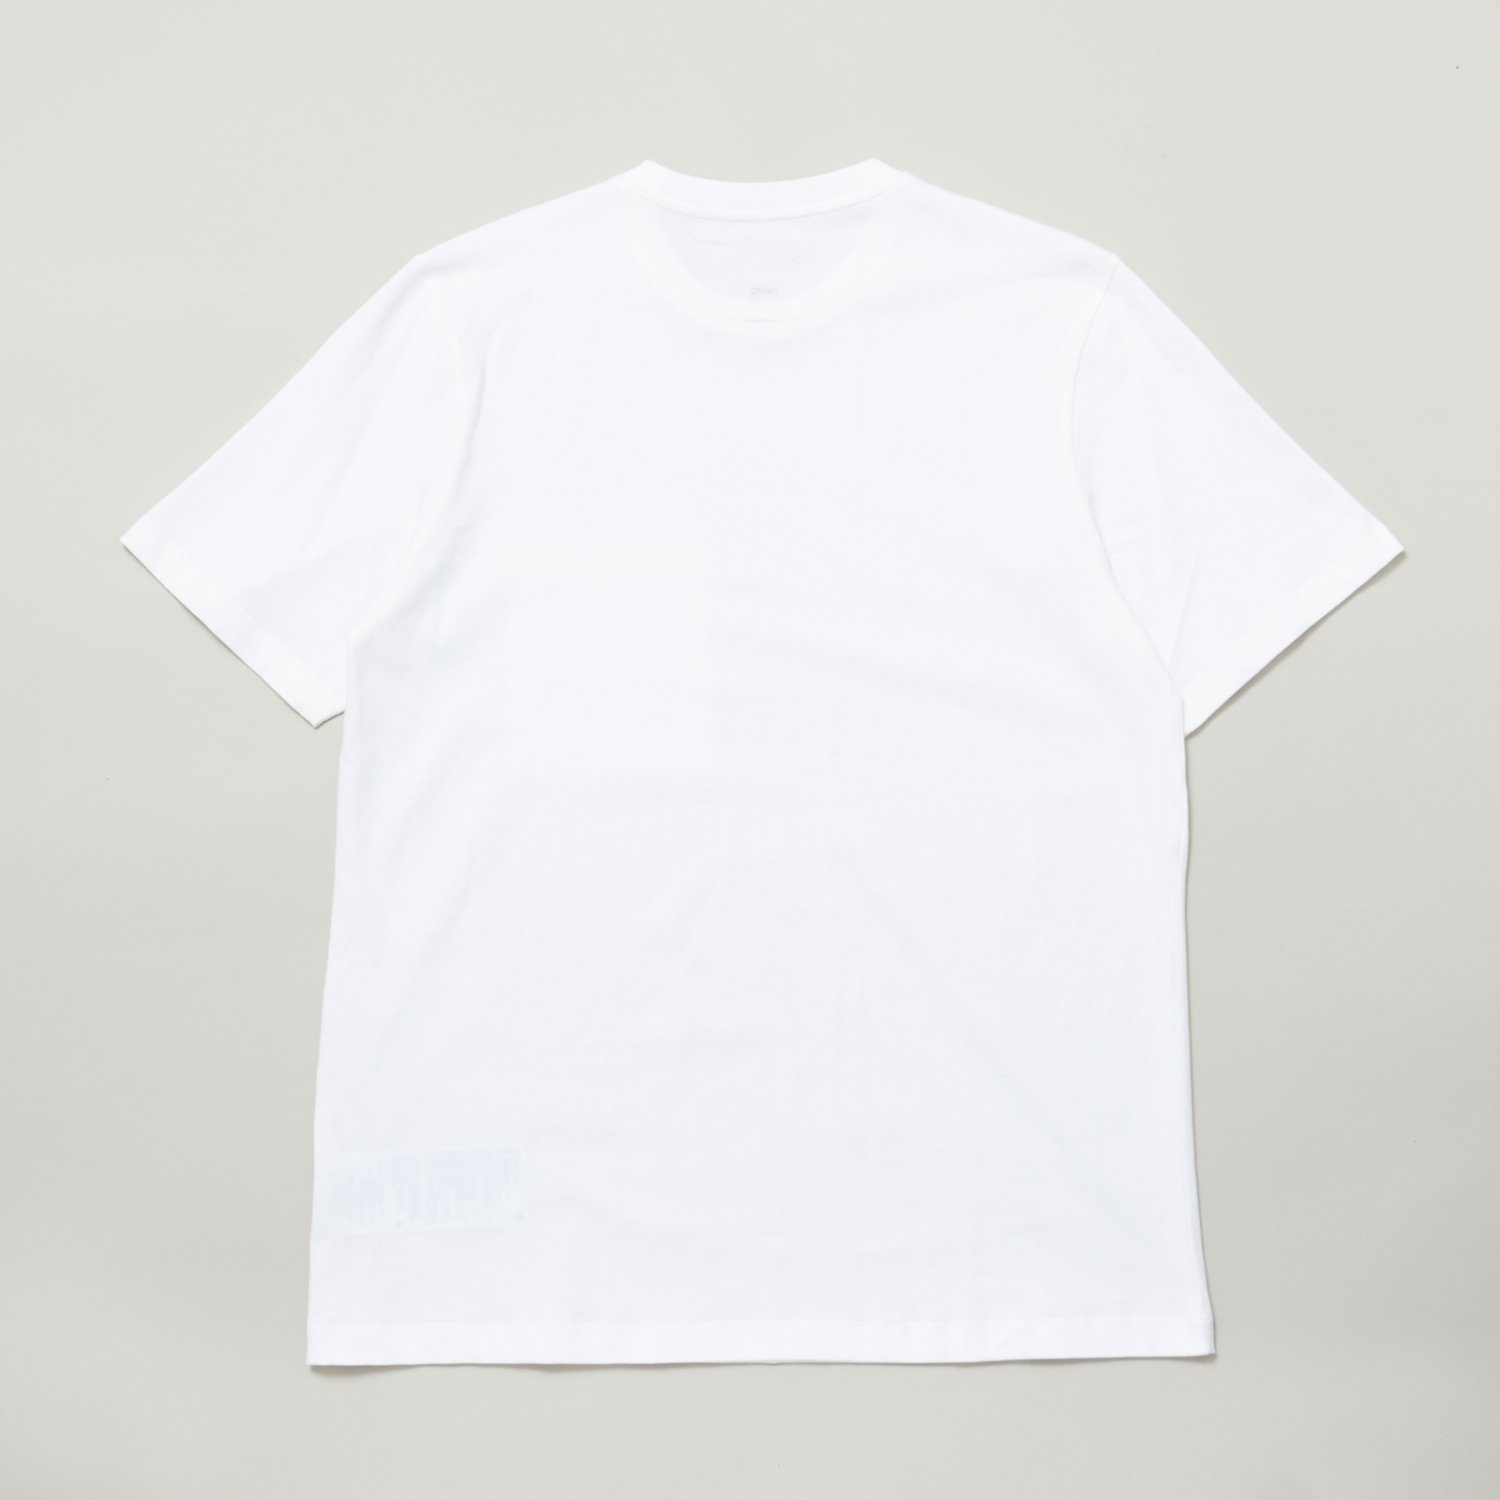 OAMC * LOGO POCKET T-SHIRT * White